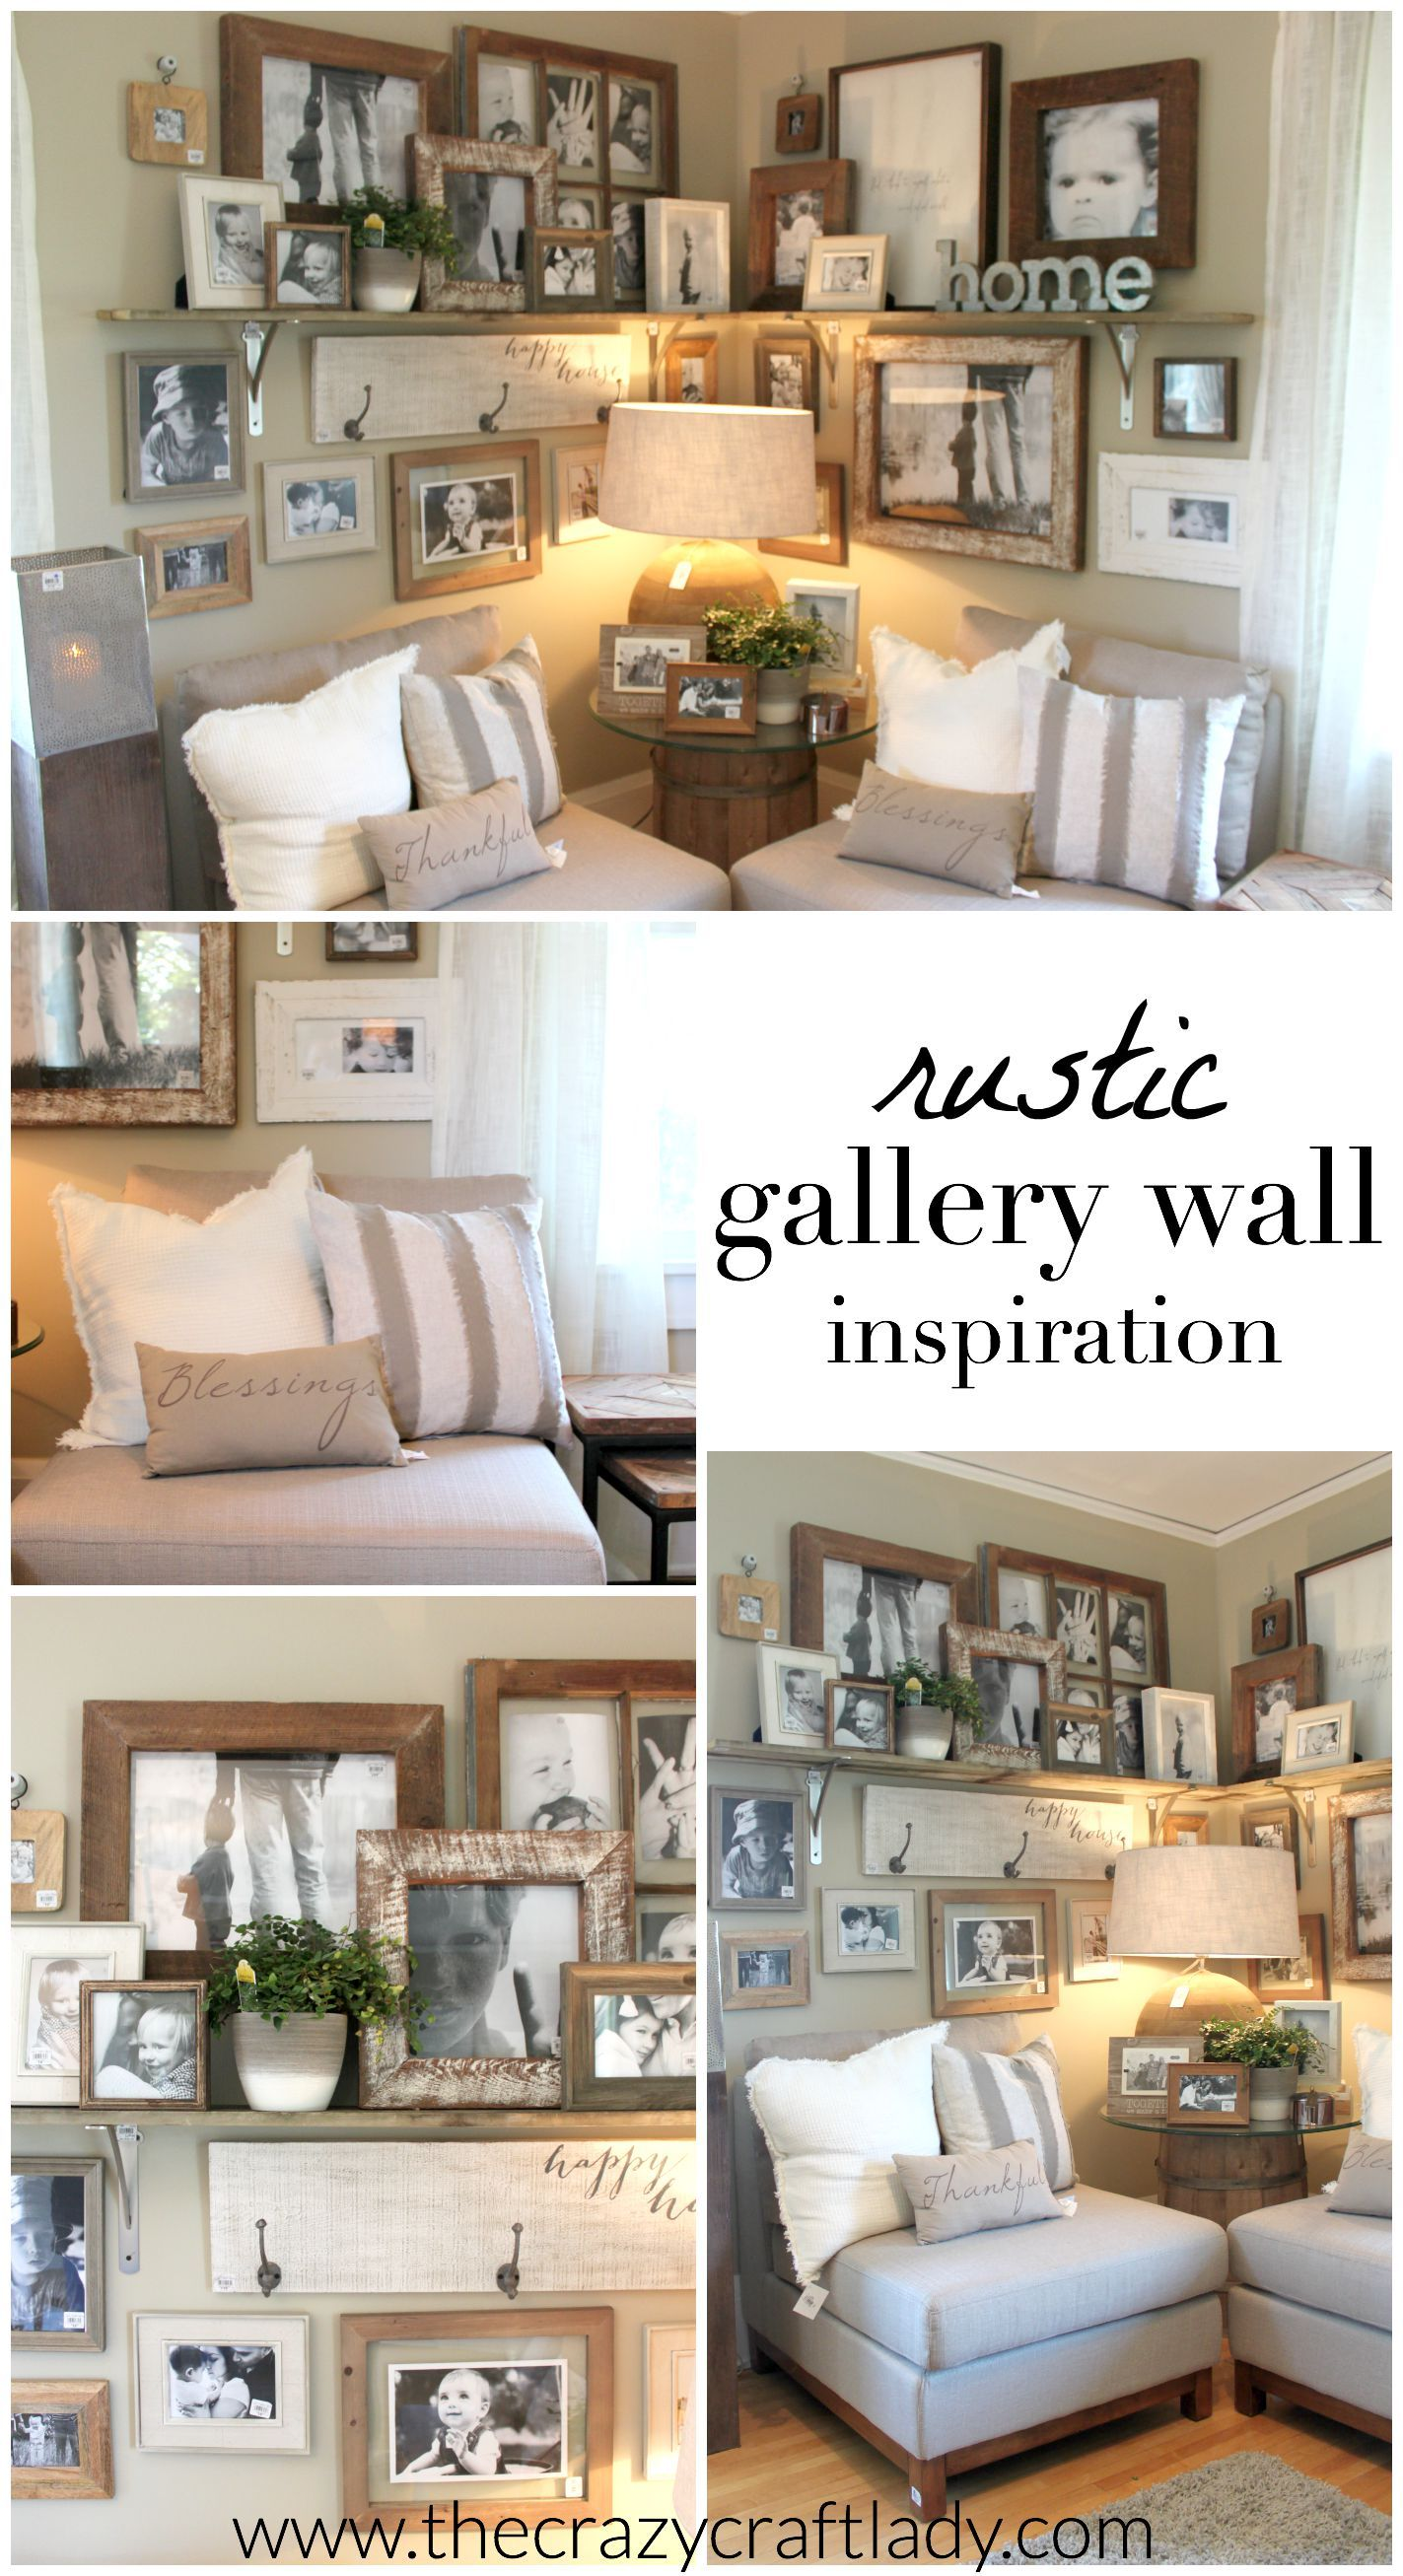 Deluxe wall gallery frame - 17 Best Images About Disposition De Cadres On Pinterest Rustic Gallery Wall Photo Walls And Picture Walls